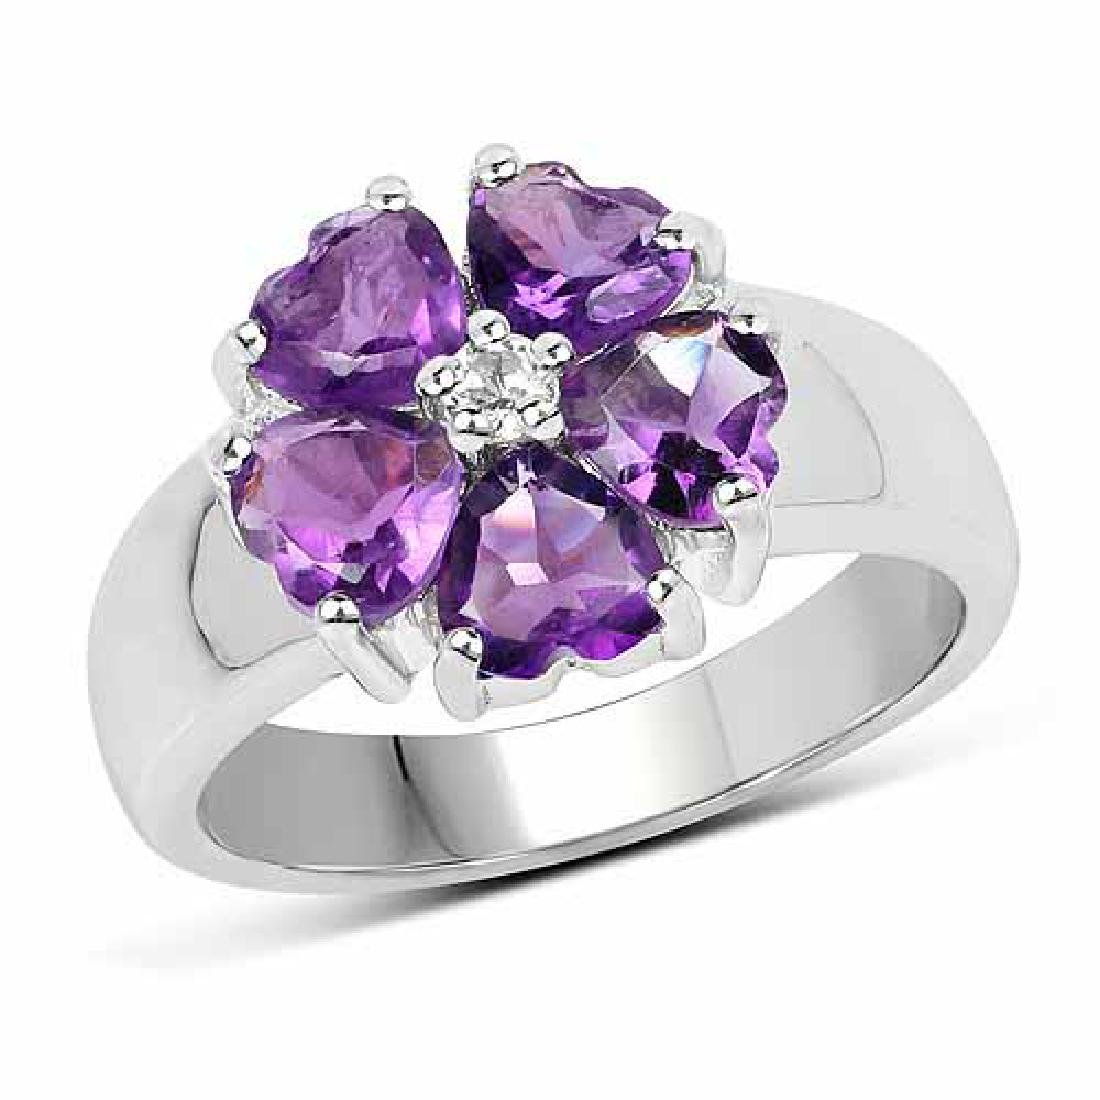 2.33 Carat Genuine Amethyst and White Topaz .925 Sterli